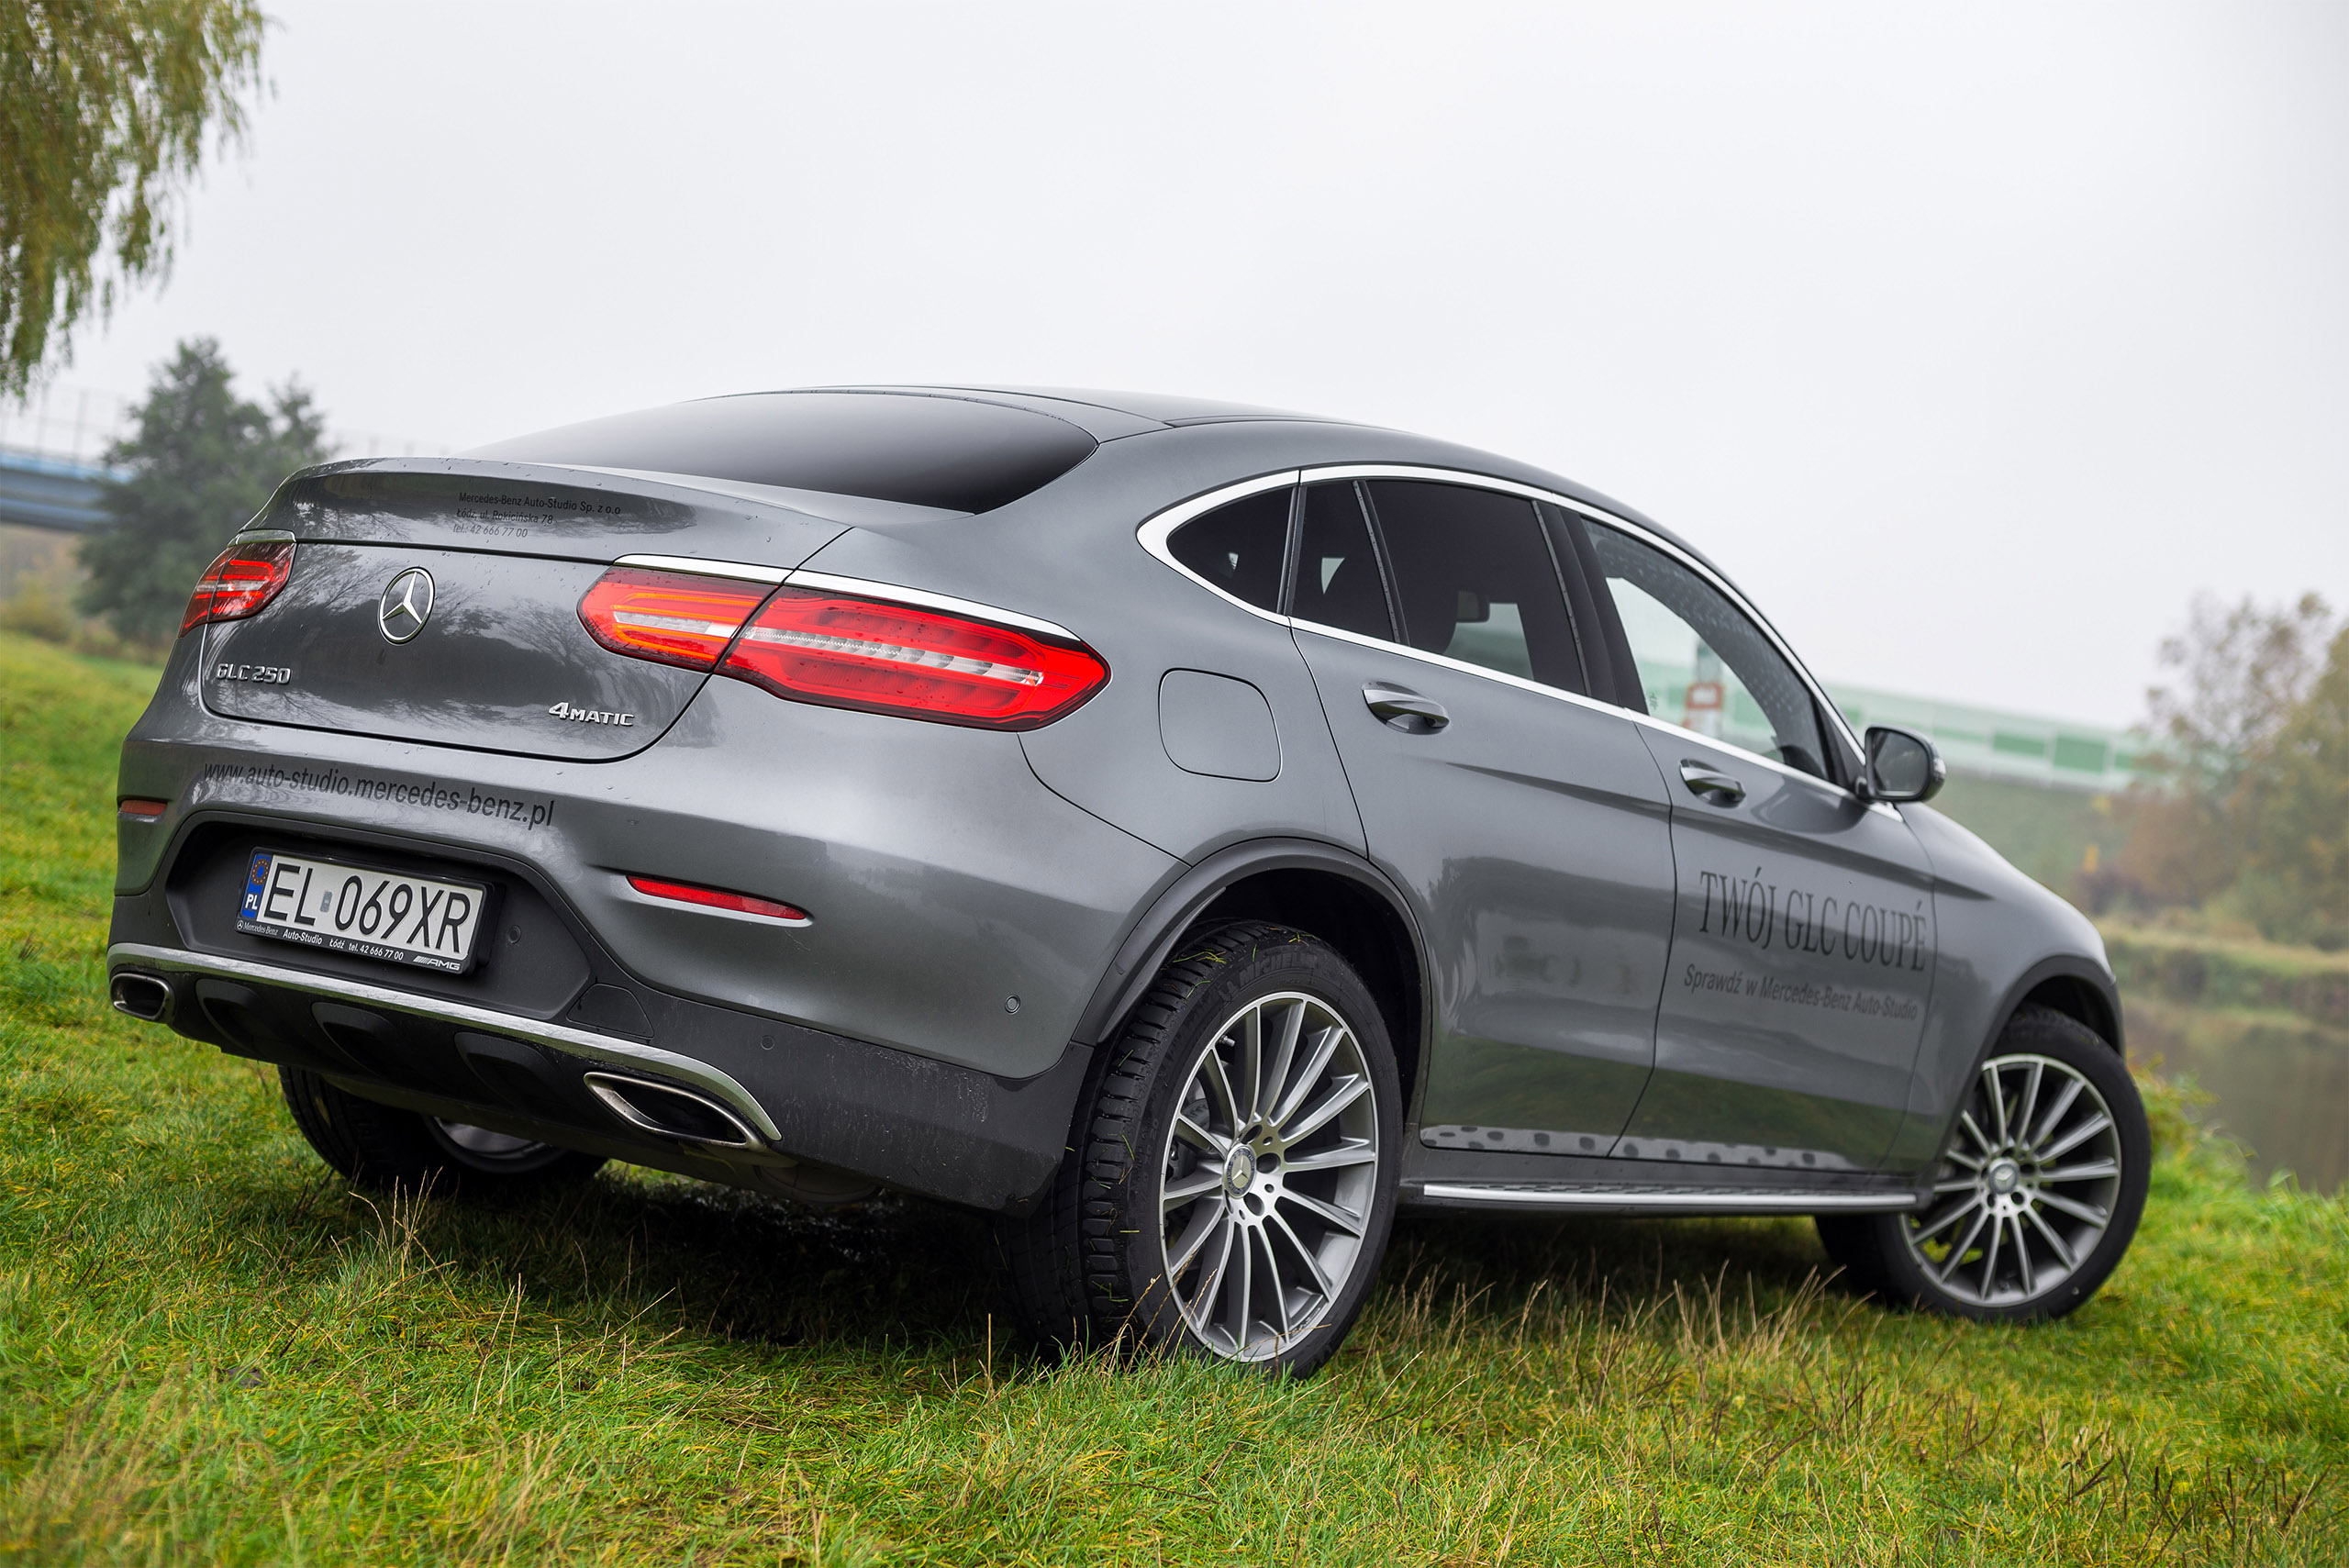 Mercedes Glc Coupe Dane Techniczne Fiat World Test Drive